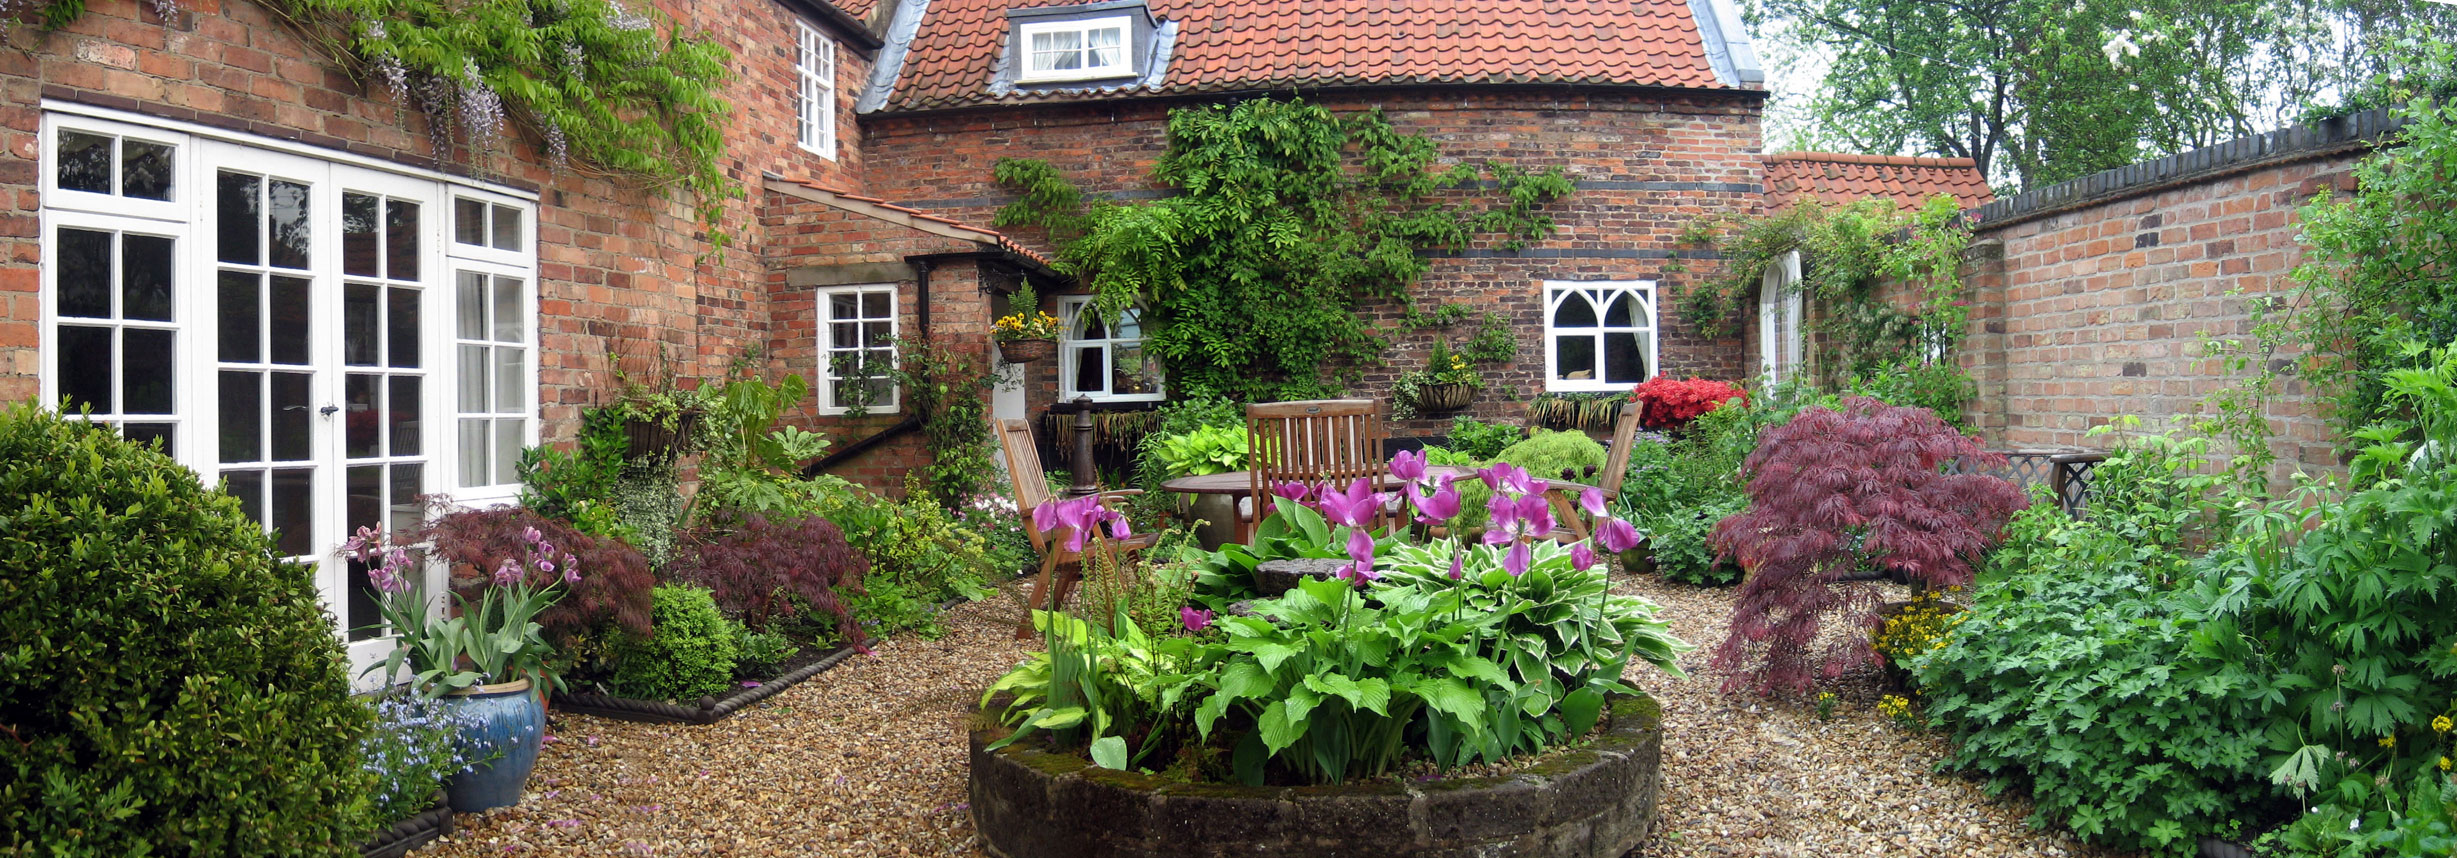 Traditional courtyard garden design style and planting for Home and landscape design